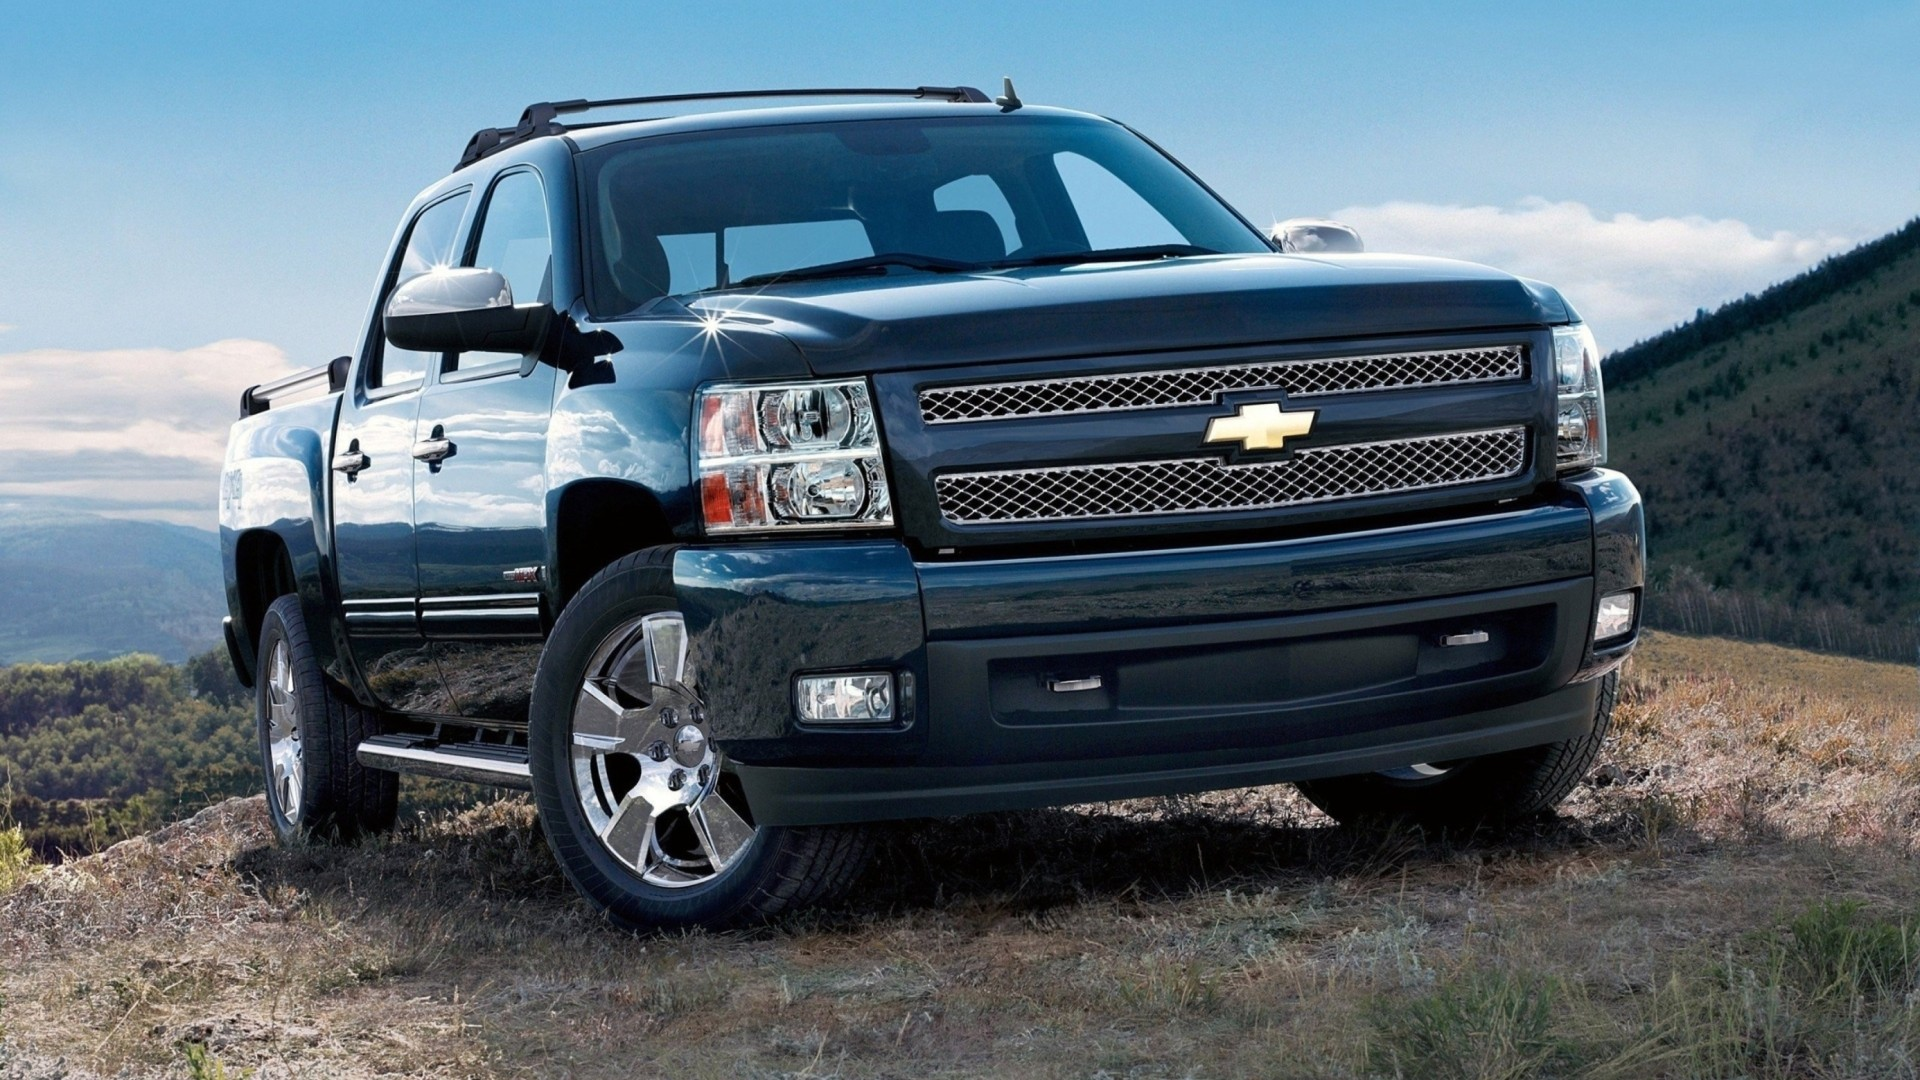 Silverado free download wallpaper